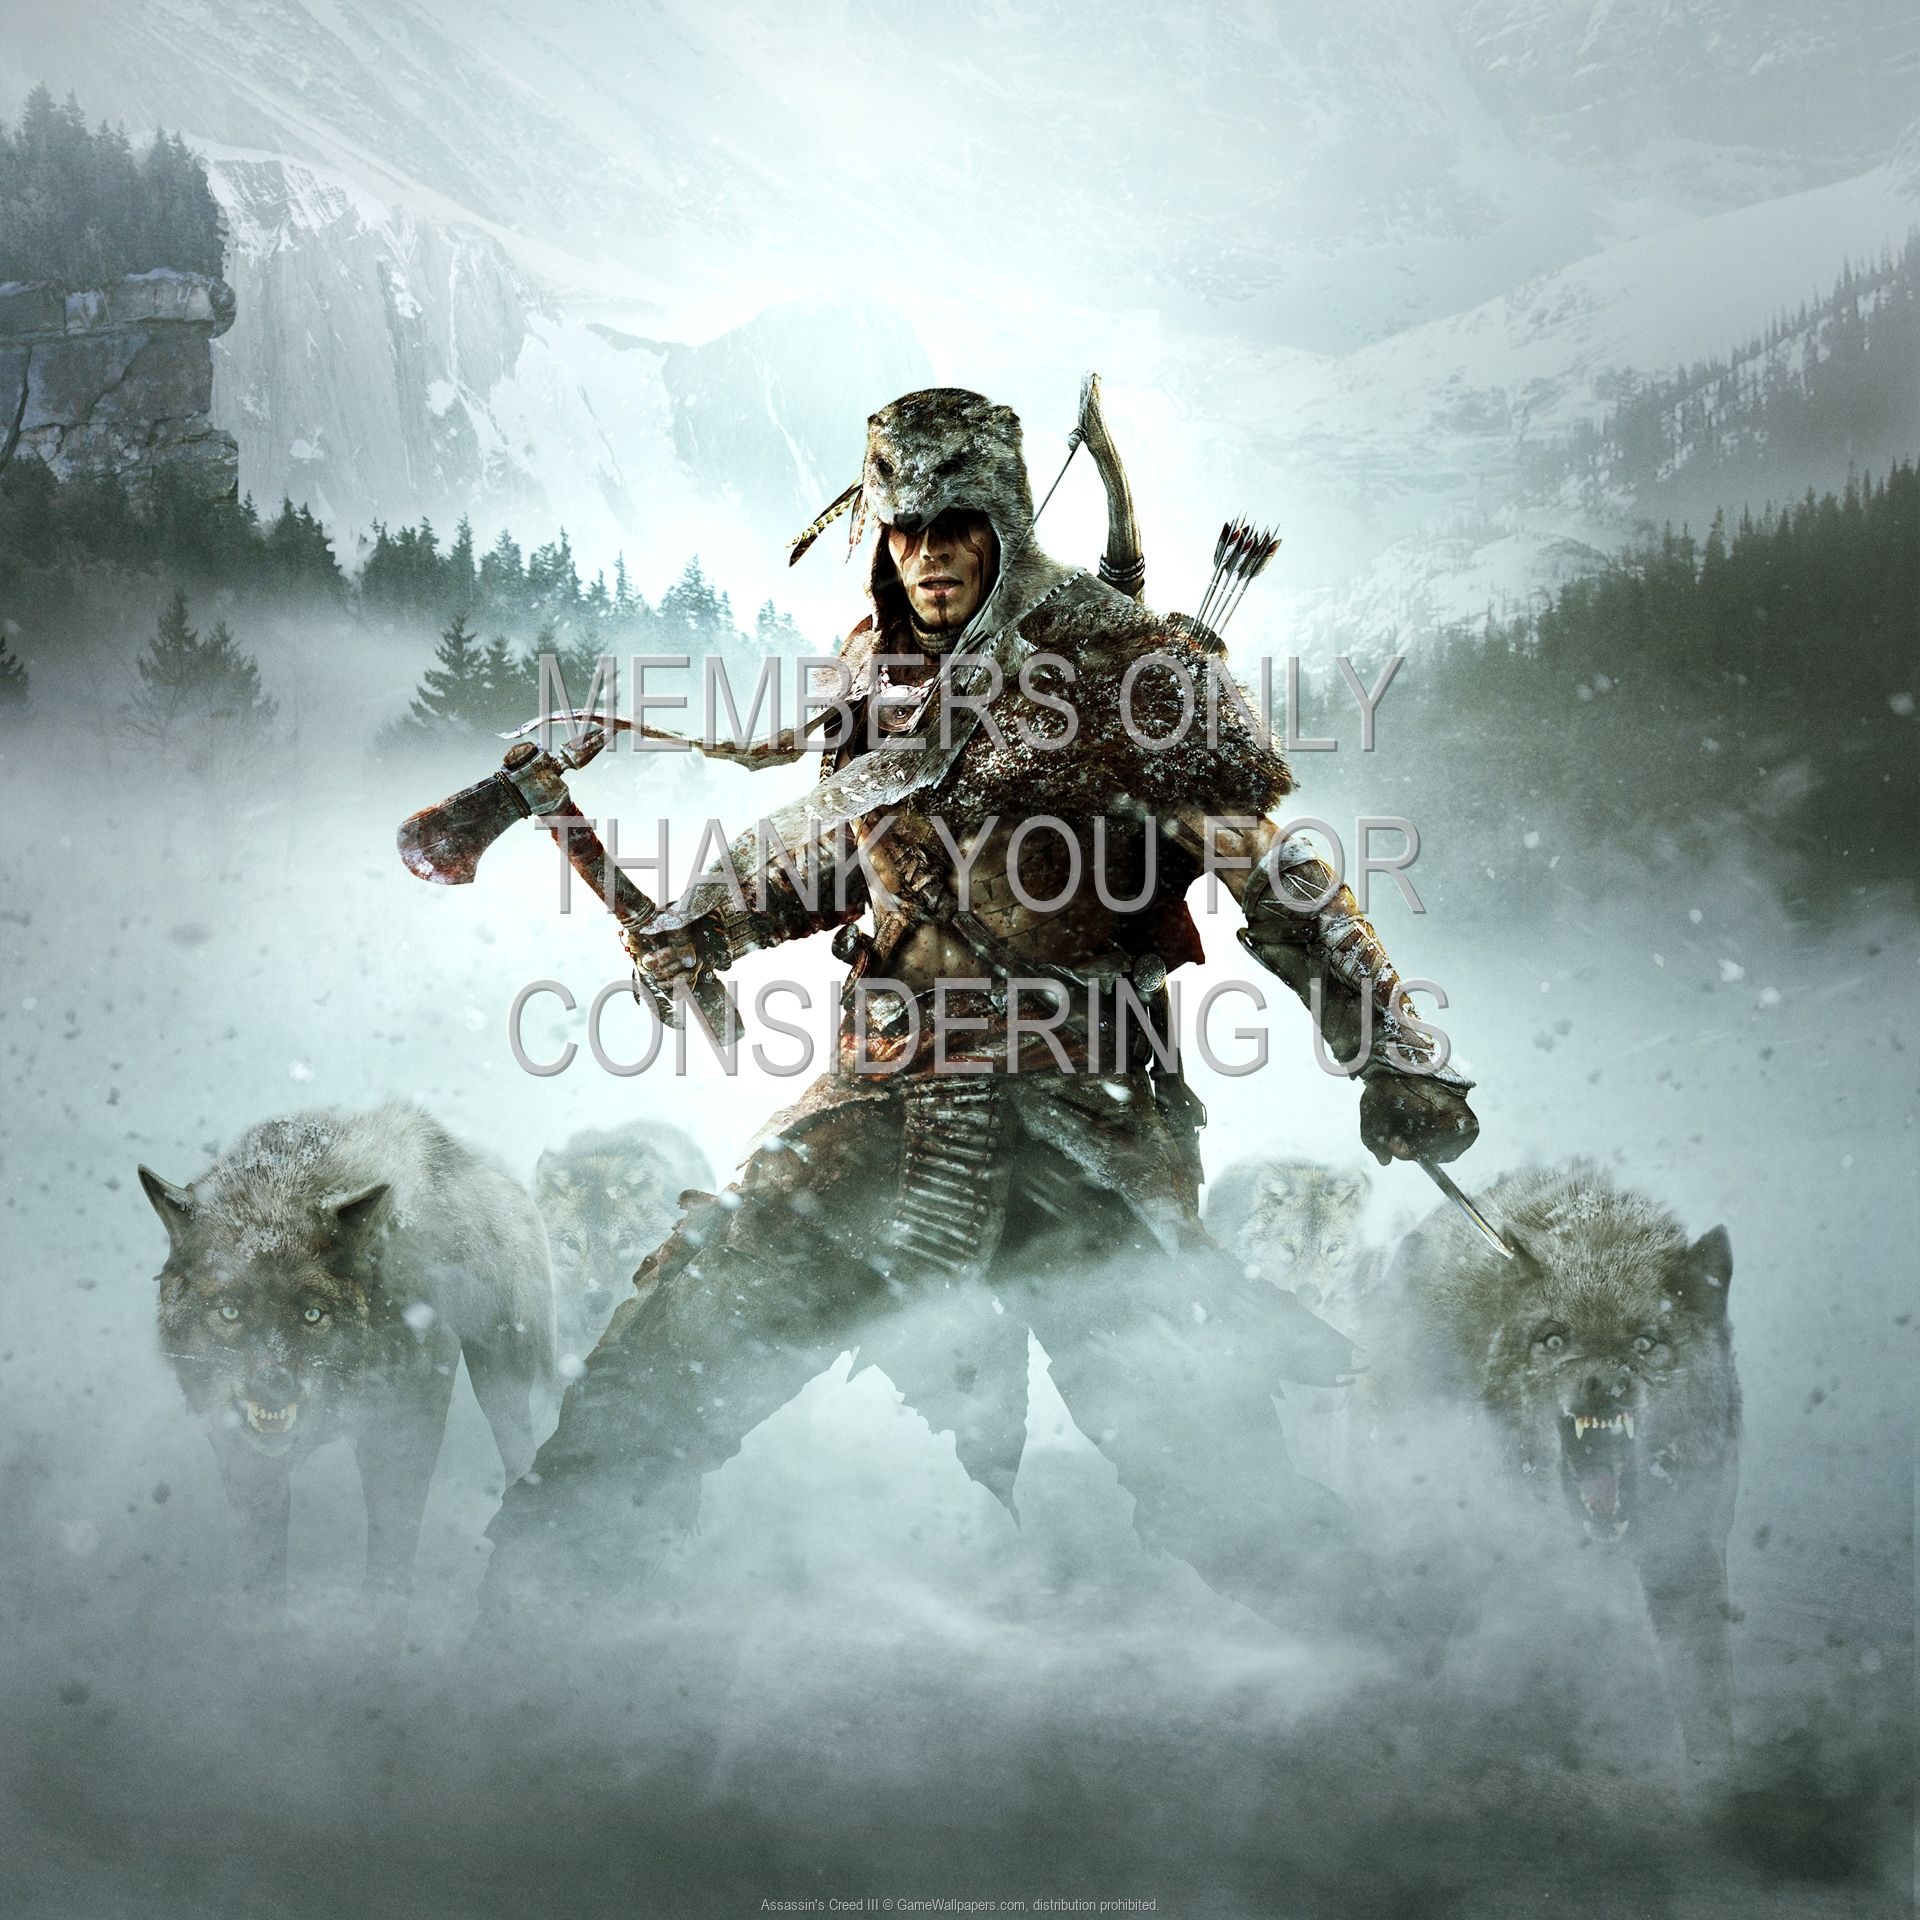 Assassin's Creed III 1920x1080 Mobile wallpaper or background 27